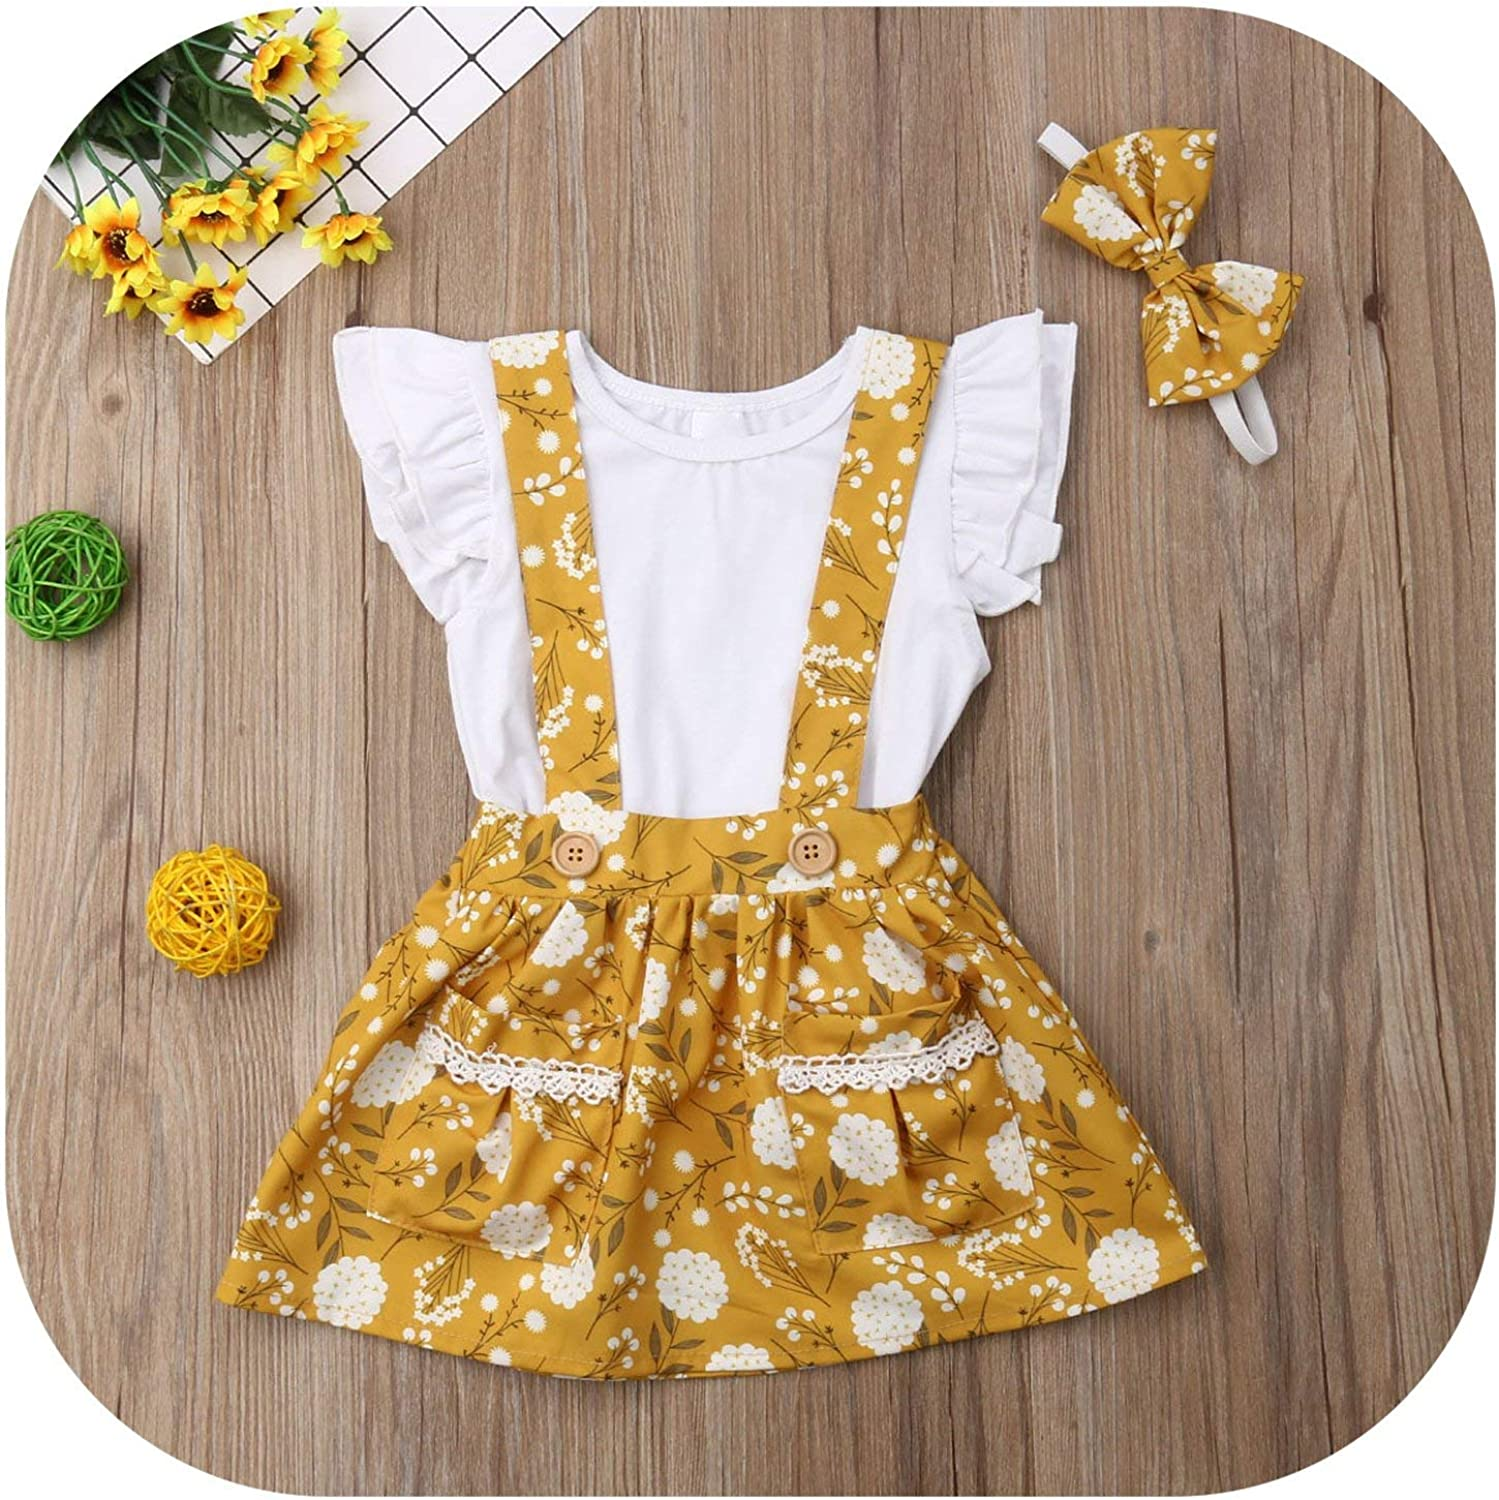 Toddler Kid Baby Girl Lace Floral Ruffled T Shirt Suspender Skirt Clothes Outfit